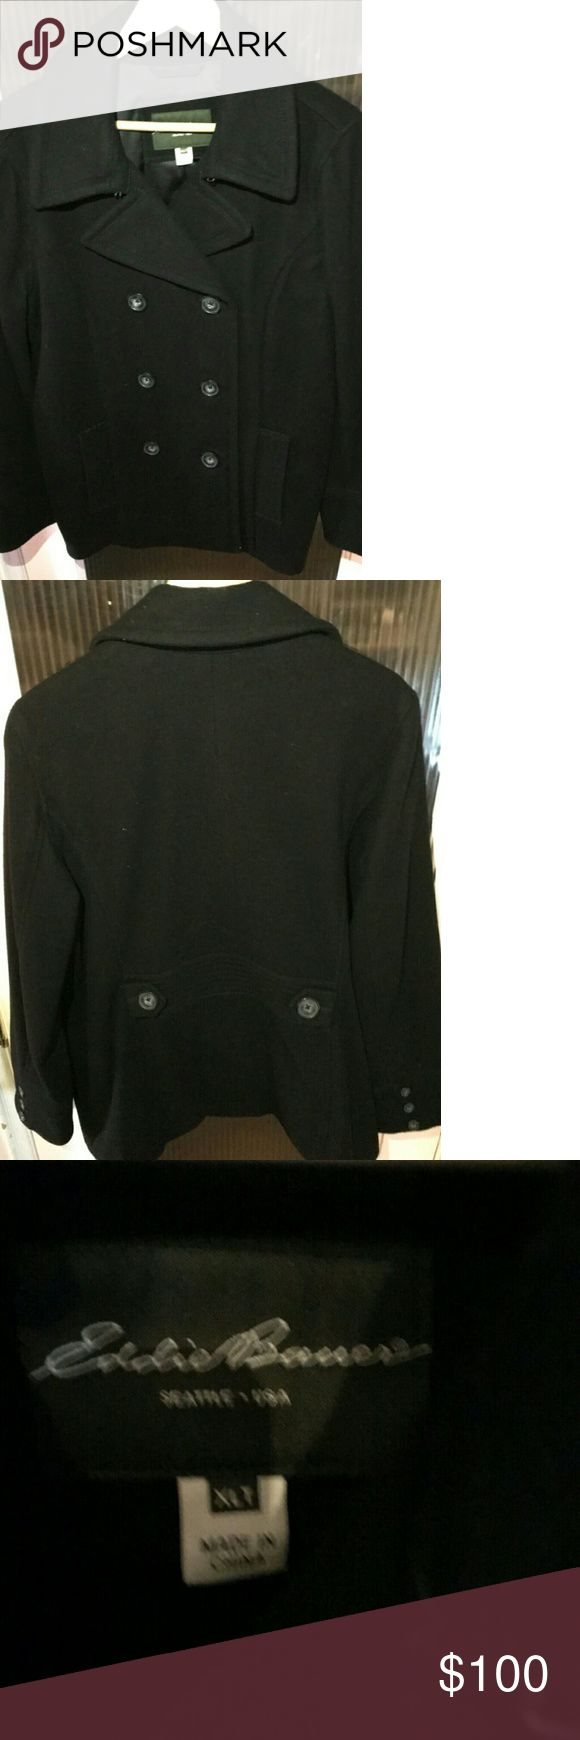 Brand New Eddie Bauer Black Pea Coat Sz XL-T This was never worn, it's brand new but no tags. No issues with it. It's a size XL tall, and it's black. Eddie Bauer Jackets & Coats Pea Coats